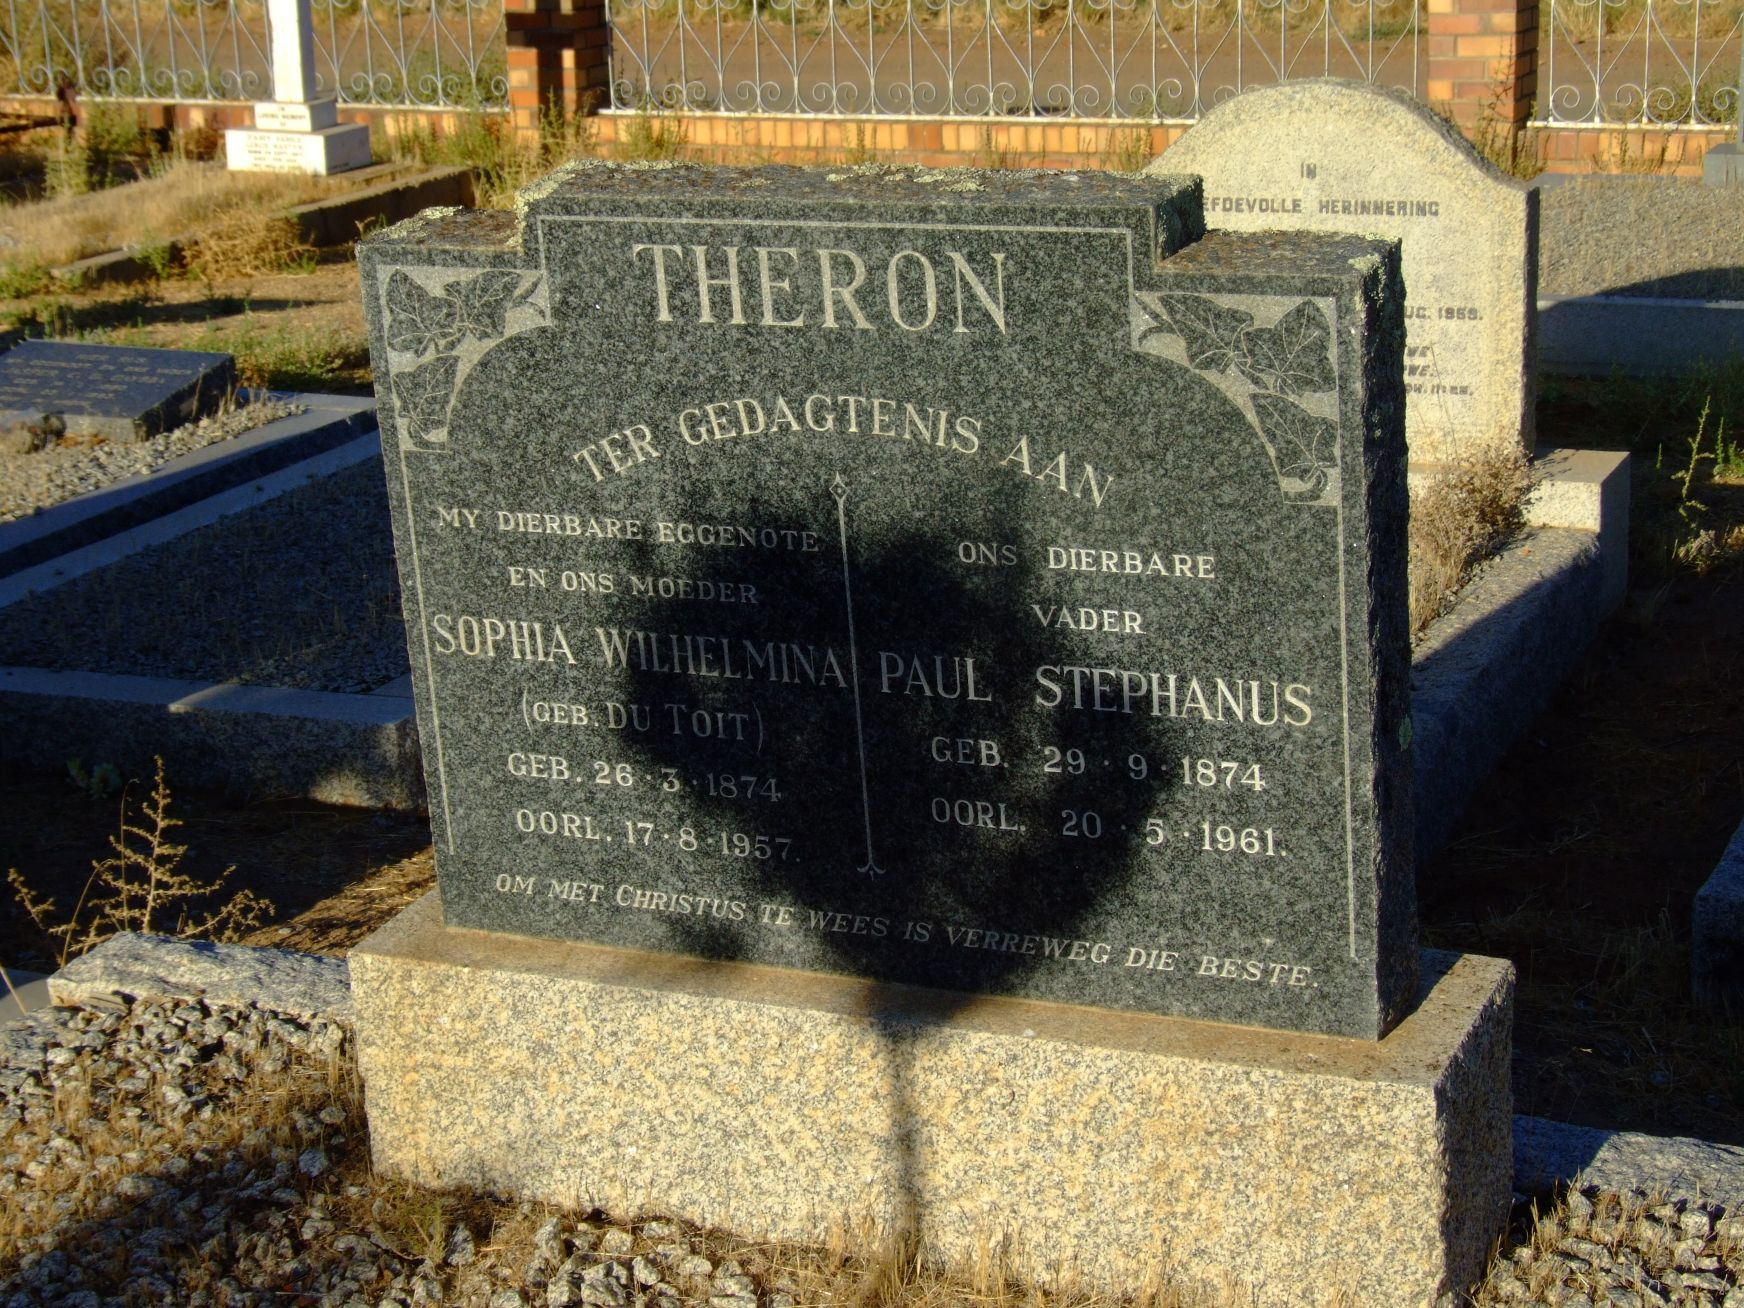 Theron, Sophia Wilhelmina (gebore Du Toit) + Theron, Paul Stepha